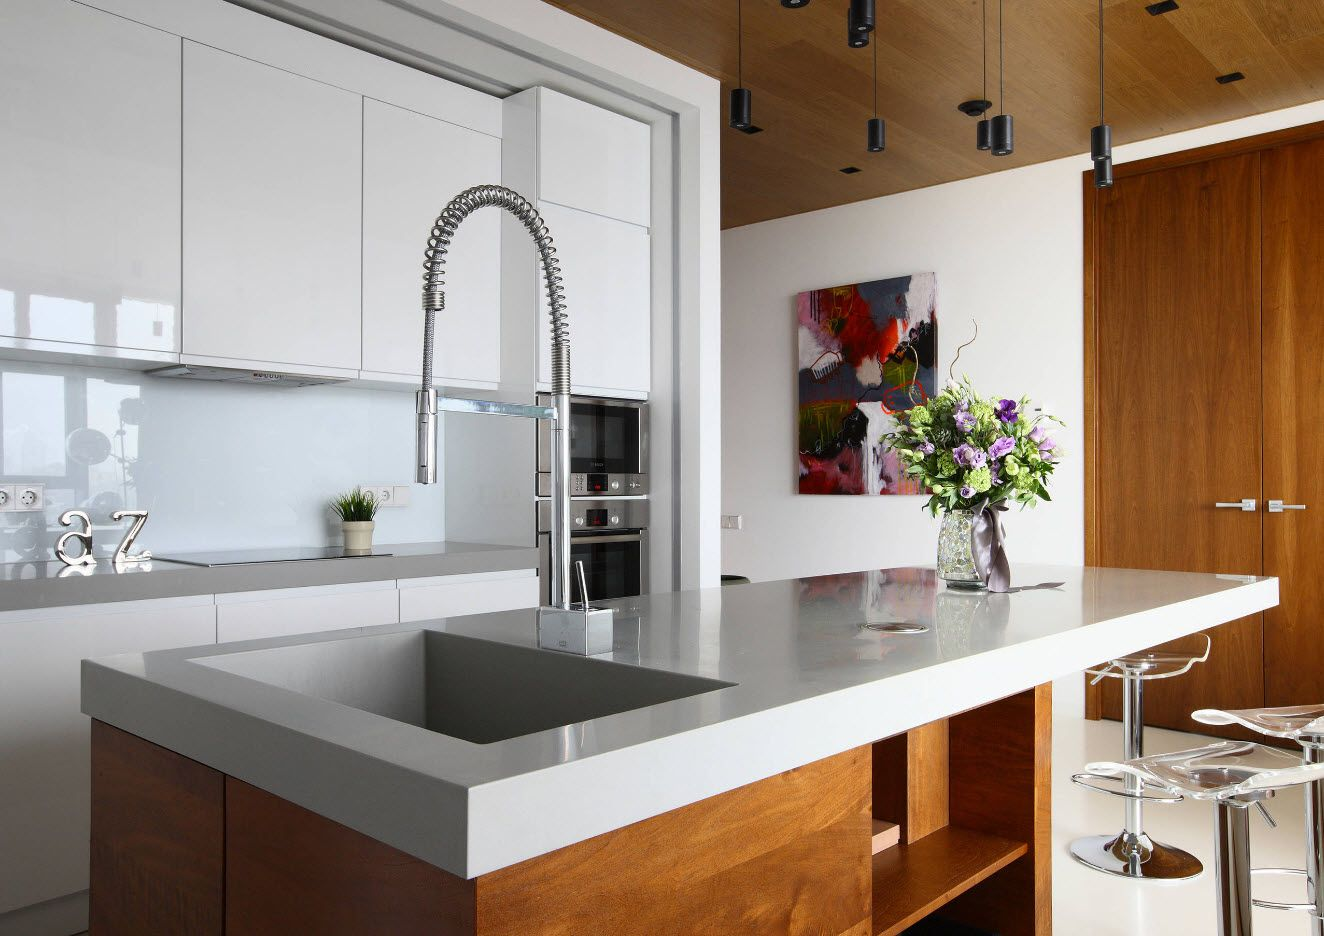 Wooden design in the modern private house's kitchen with mix of materials